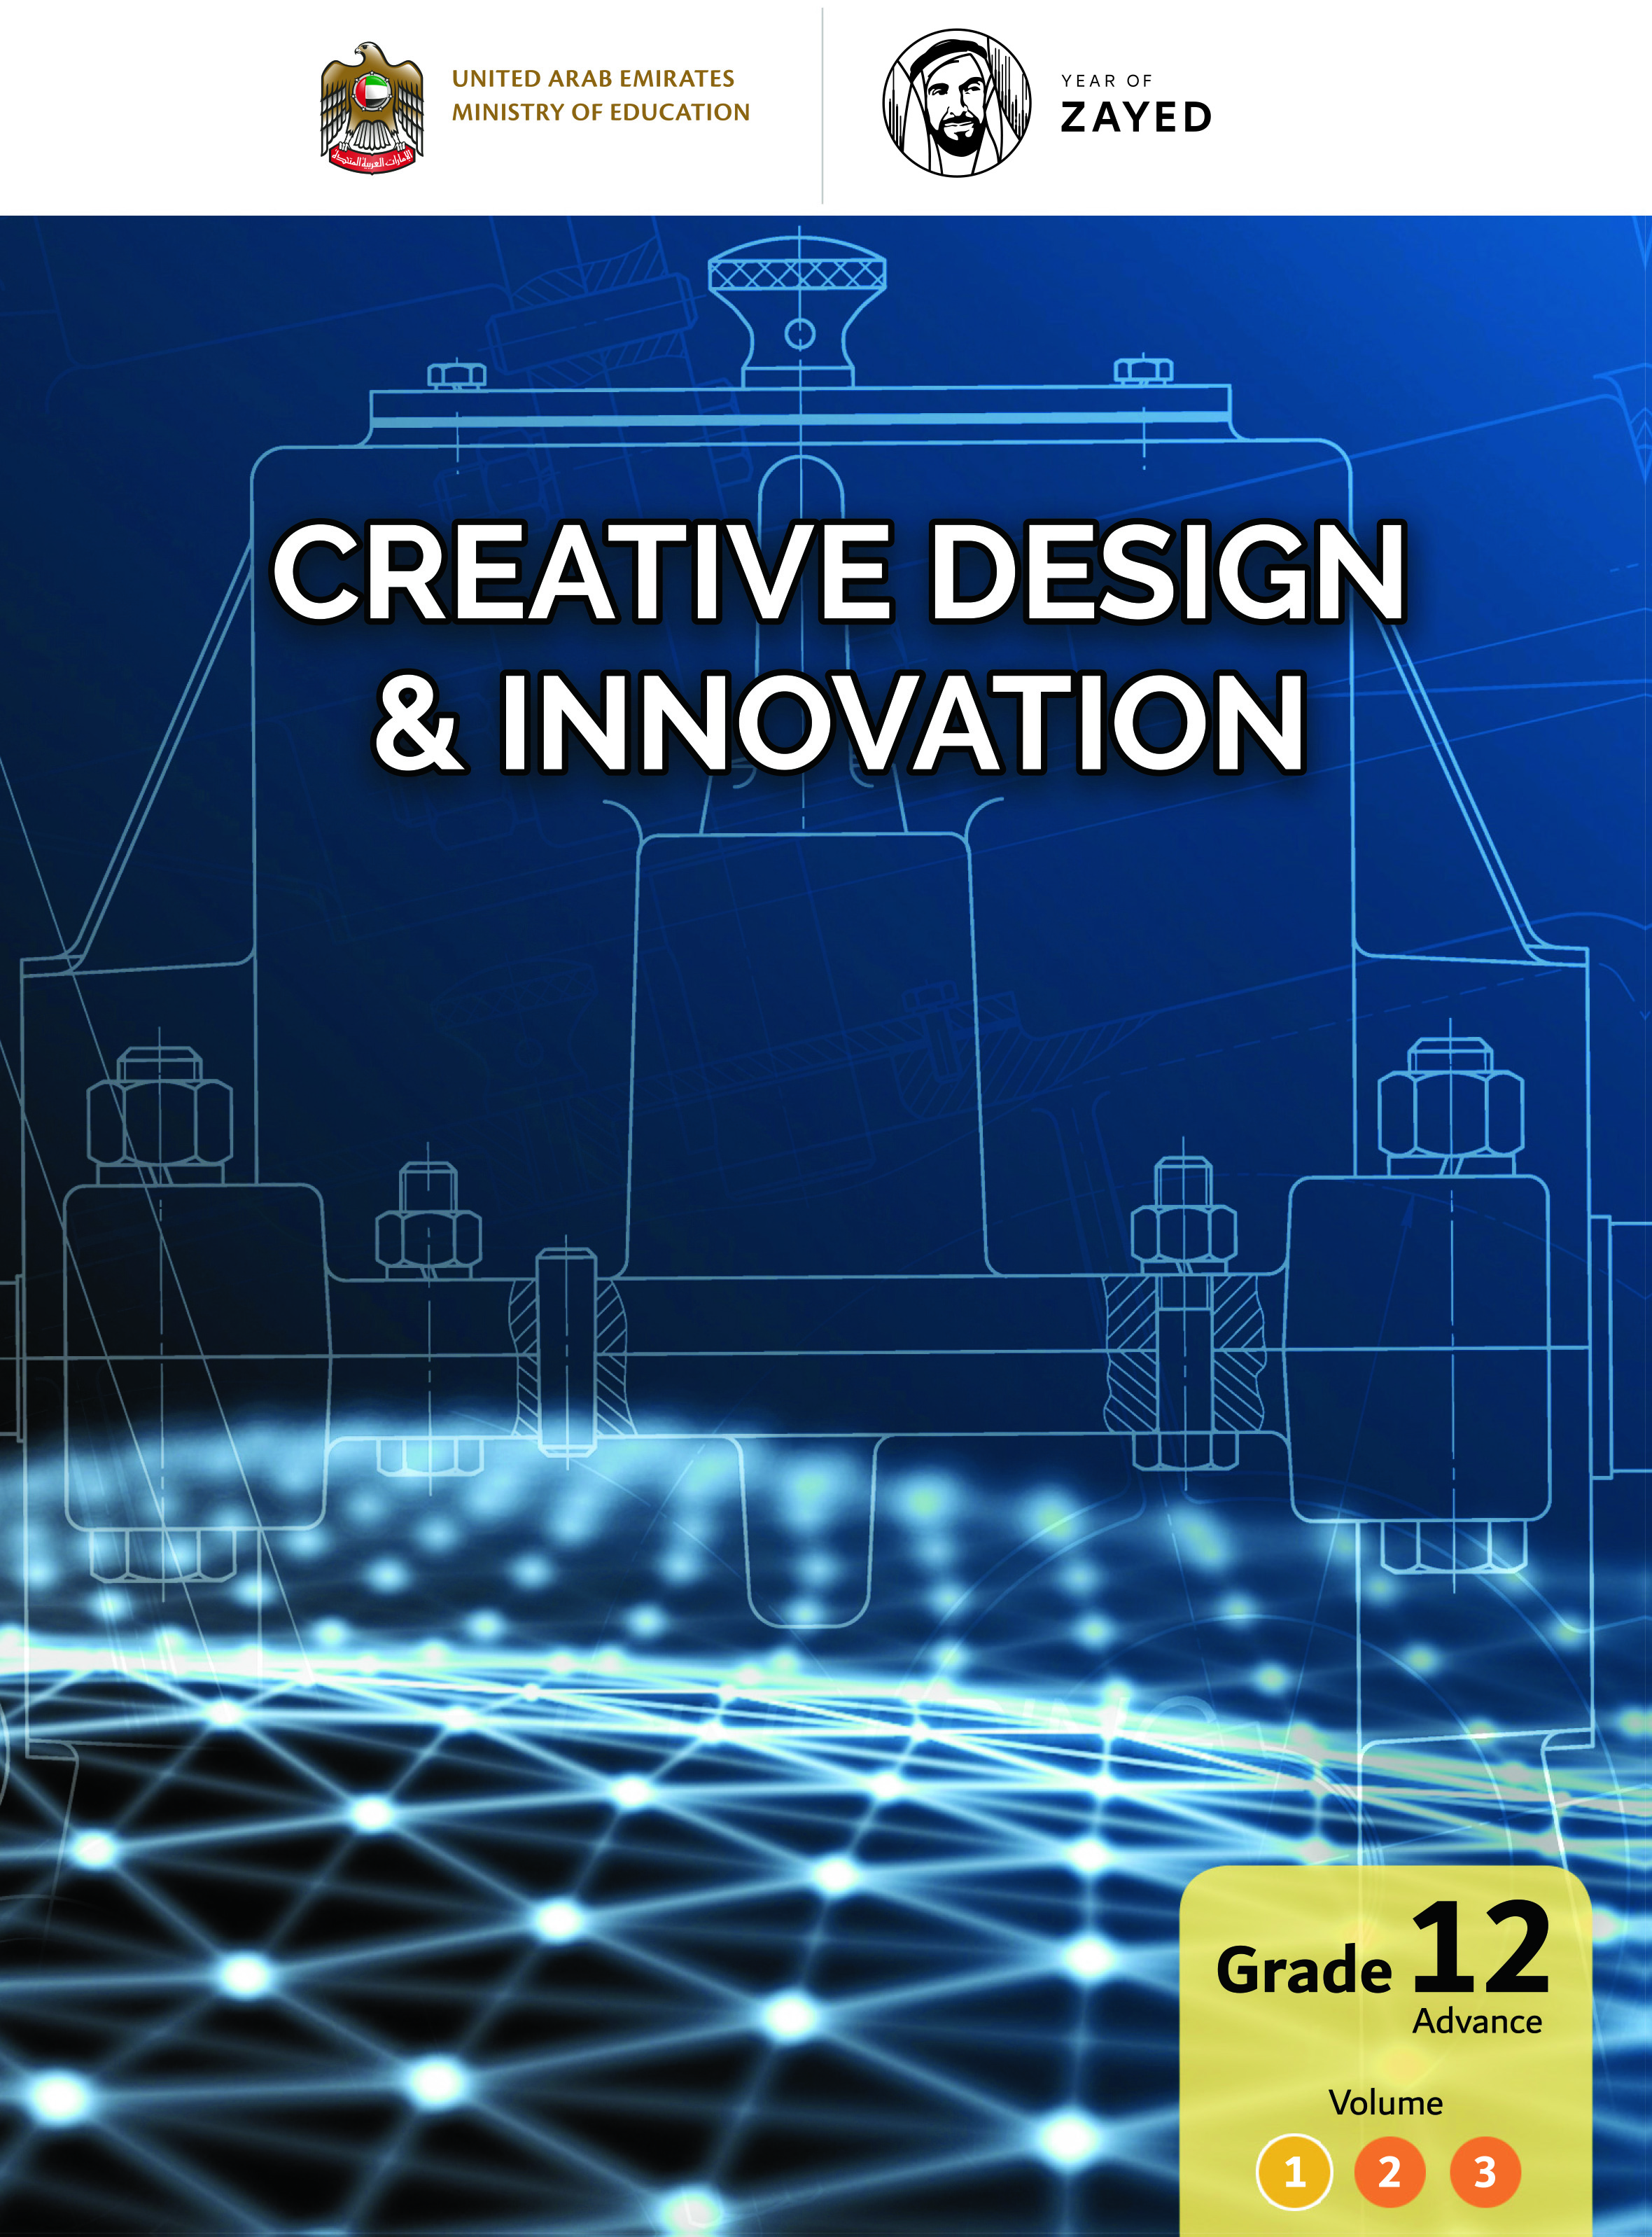 Creative Desing & Innovation - SE - G12_ADV - P01